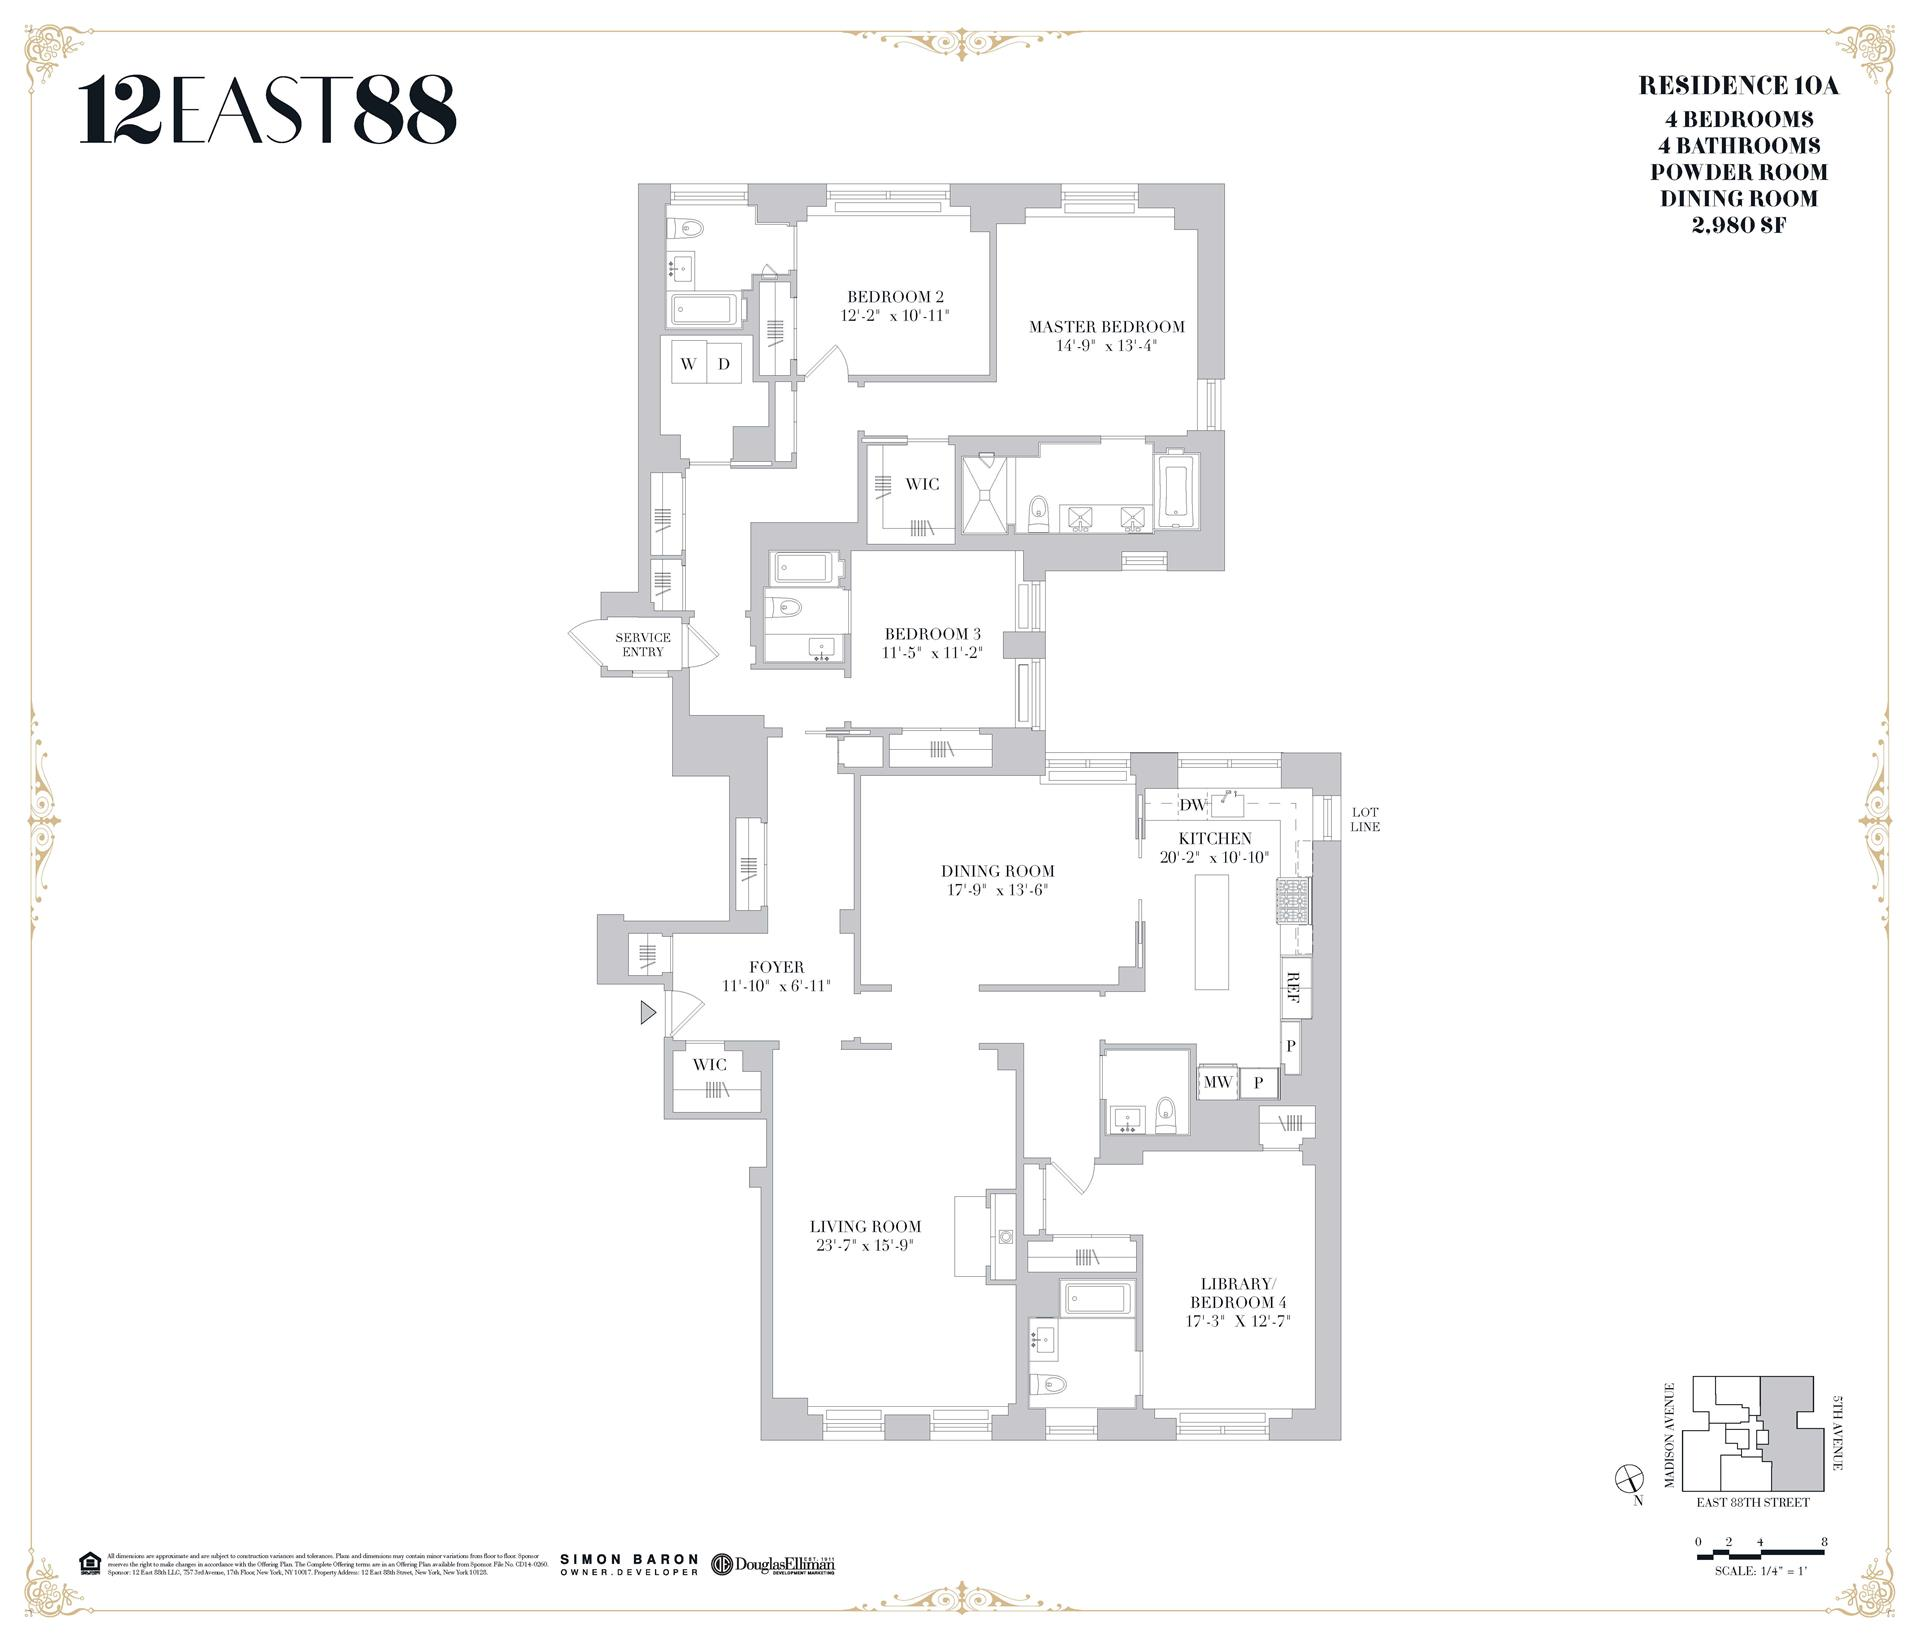 Floor plan of 12 East 88th St, 10A - Carnegie Hill, New York